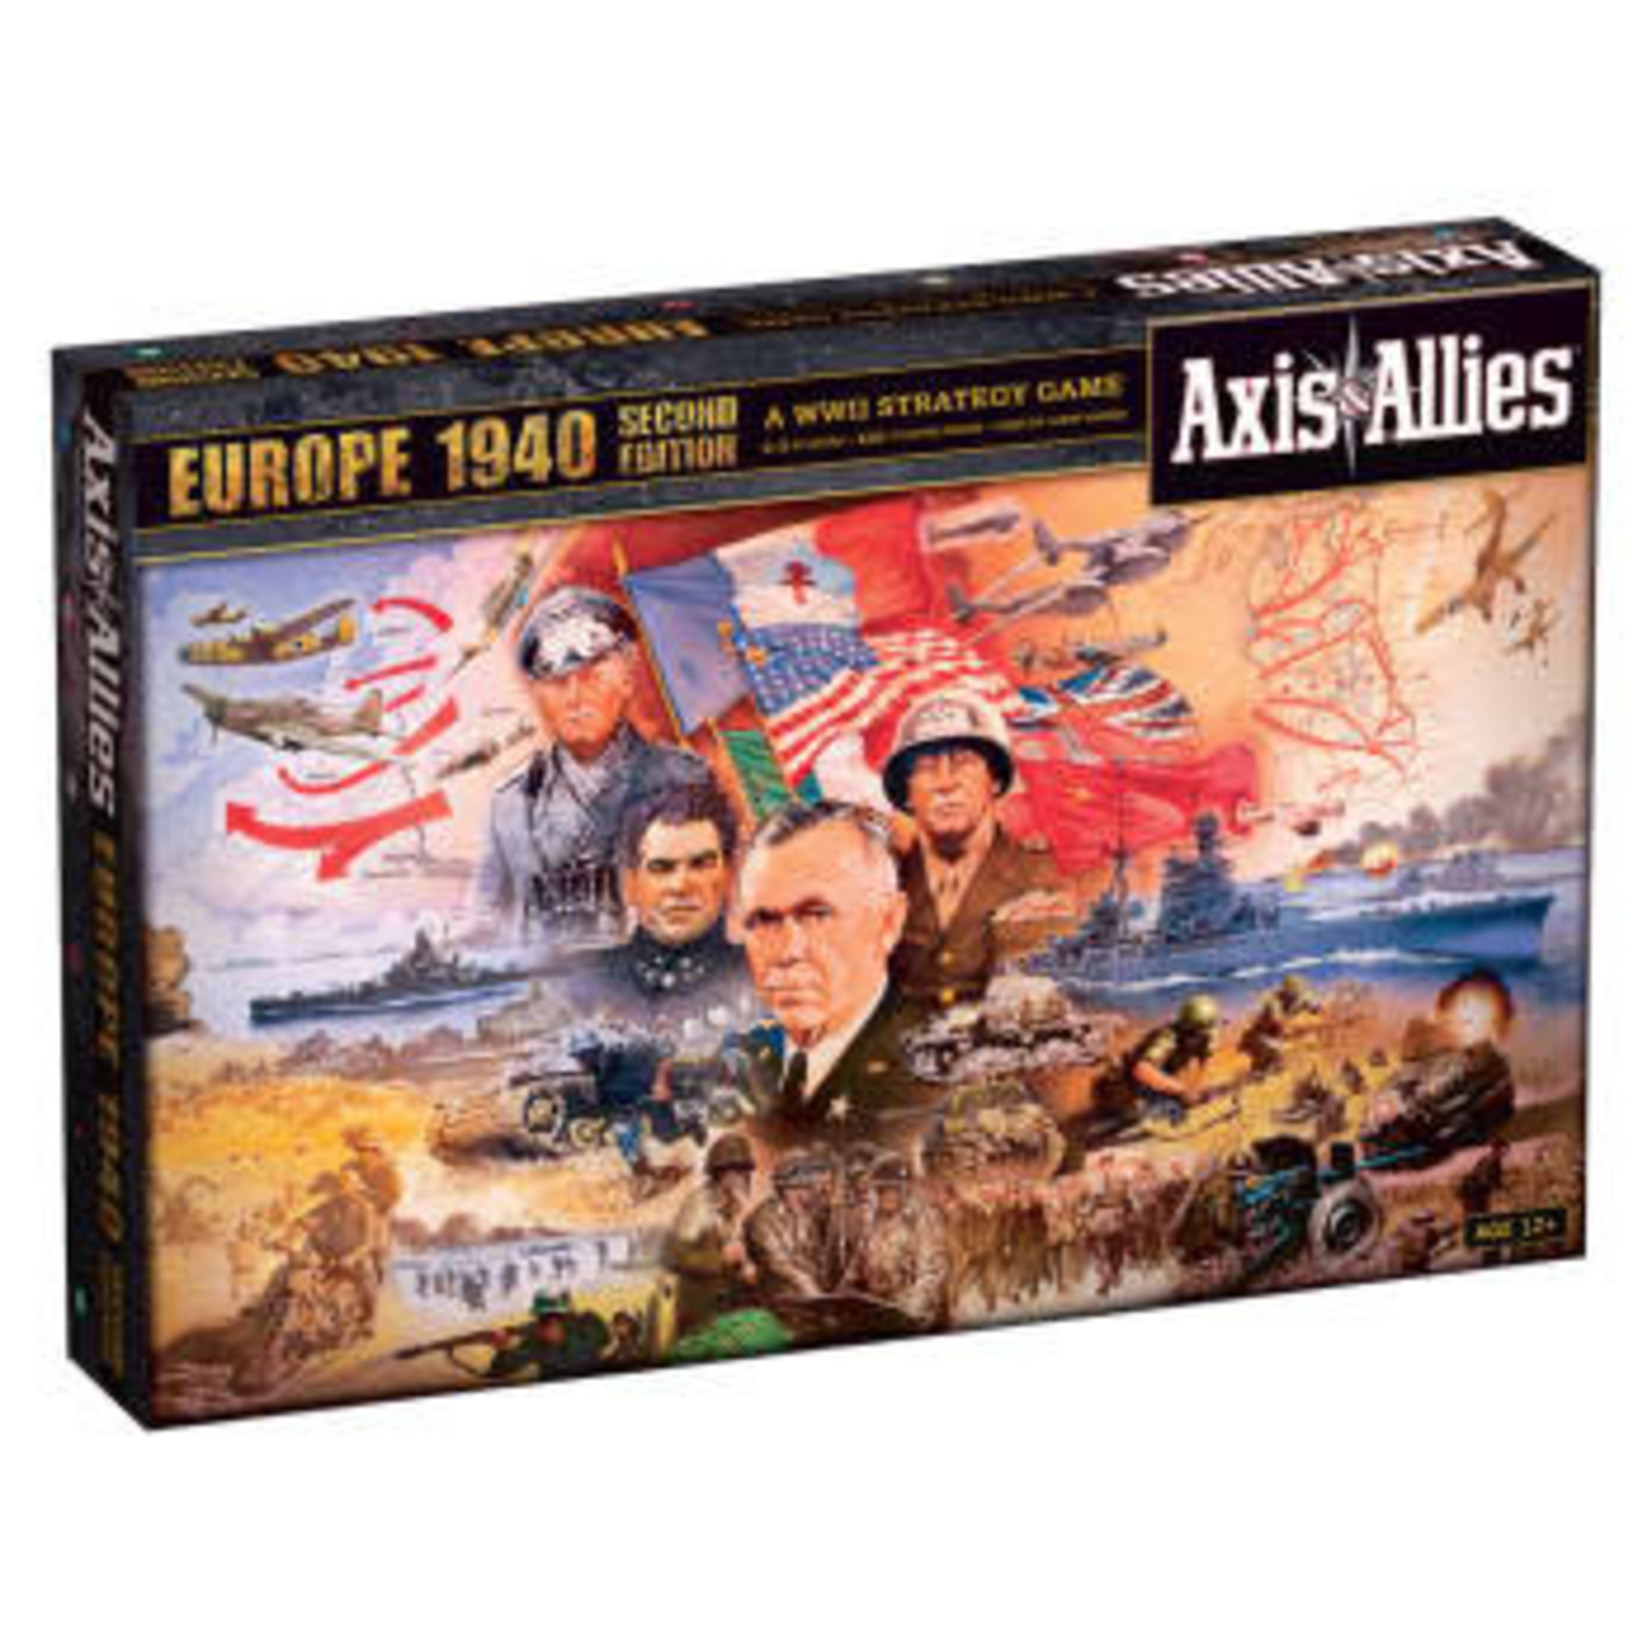 Wizards of the Coast Axis & Allies: 1940 Europe